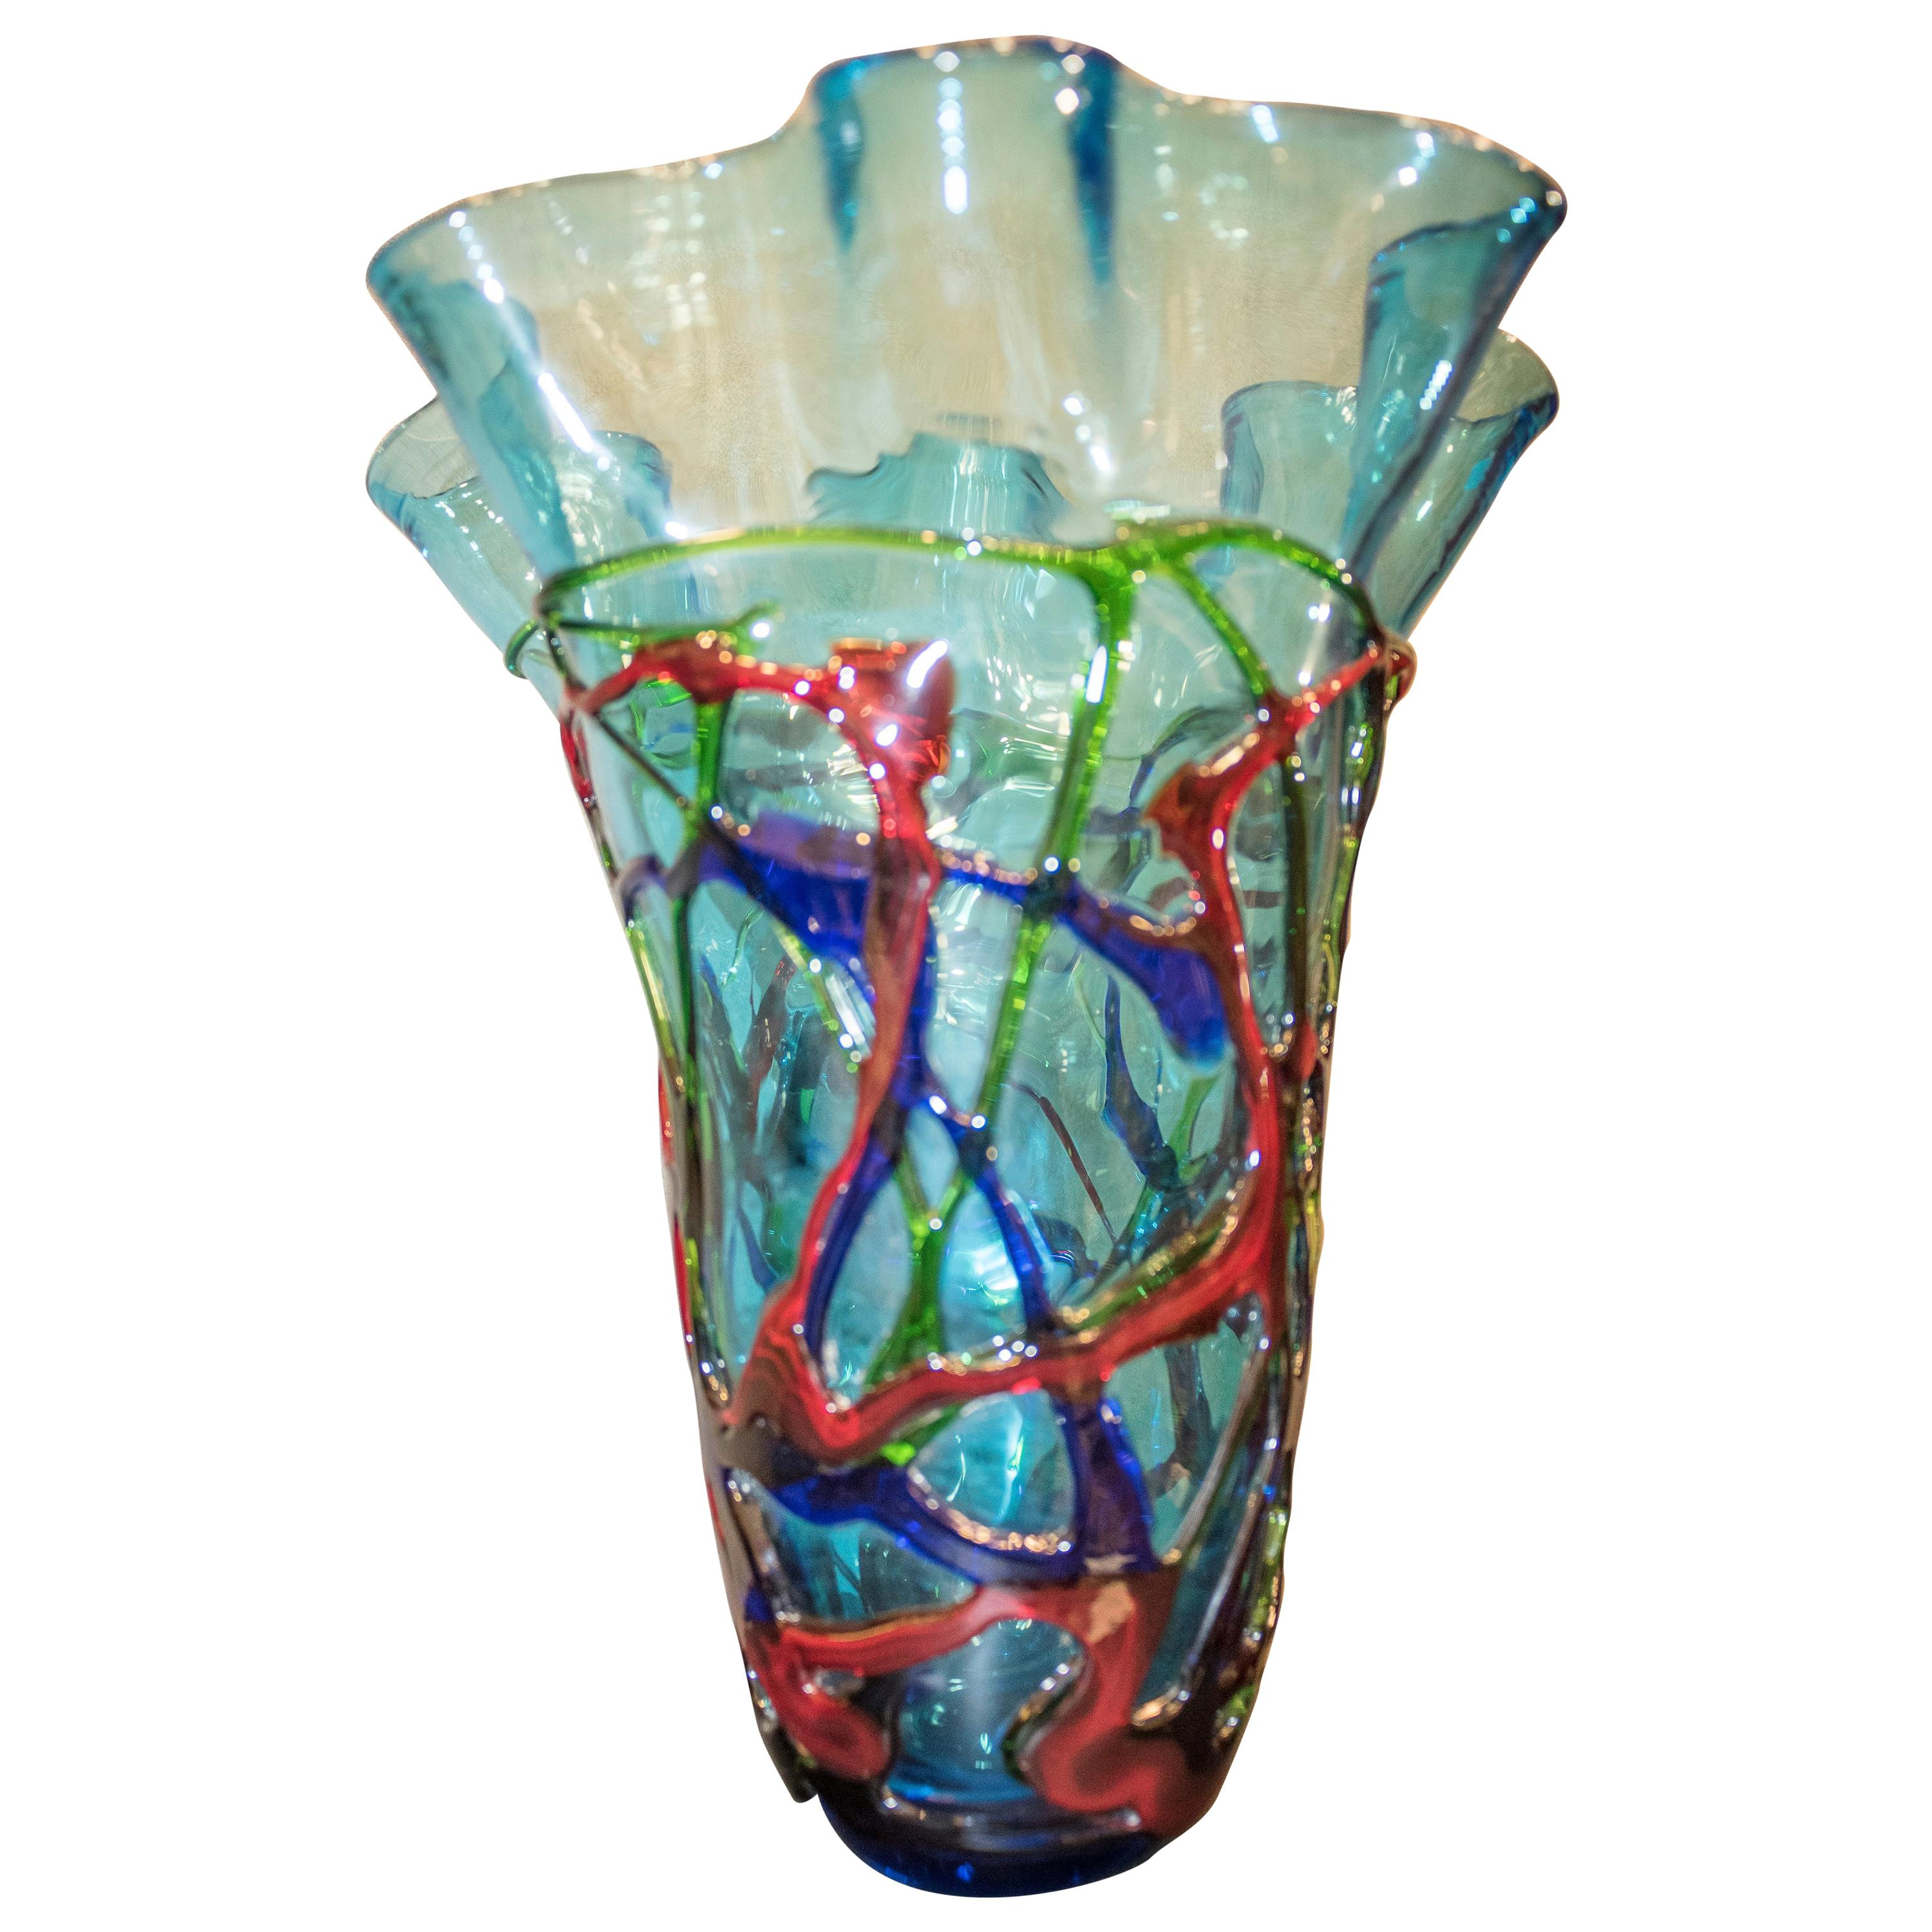 1970 Vase Red, Blue, Green Blowing Murano, Italy Crystal